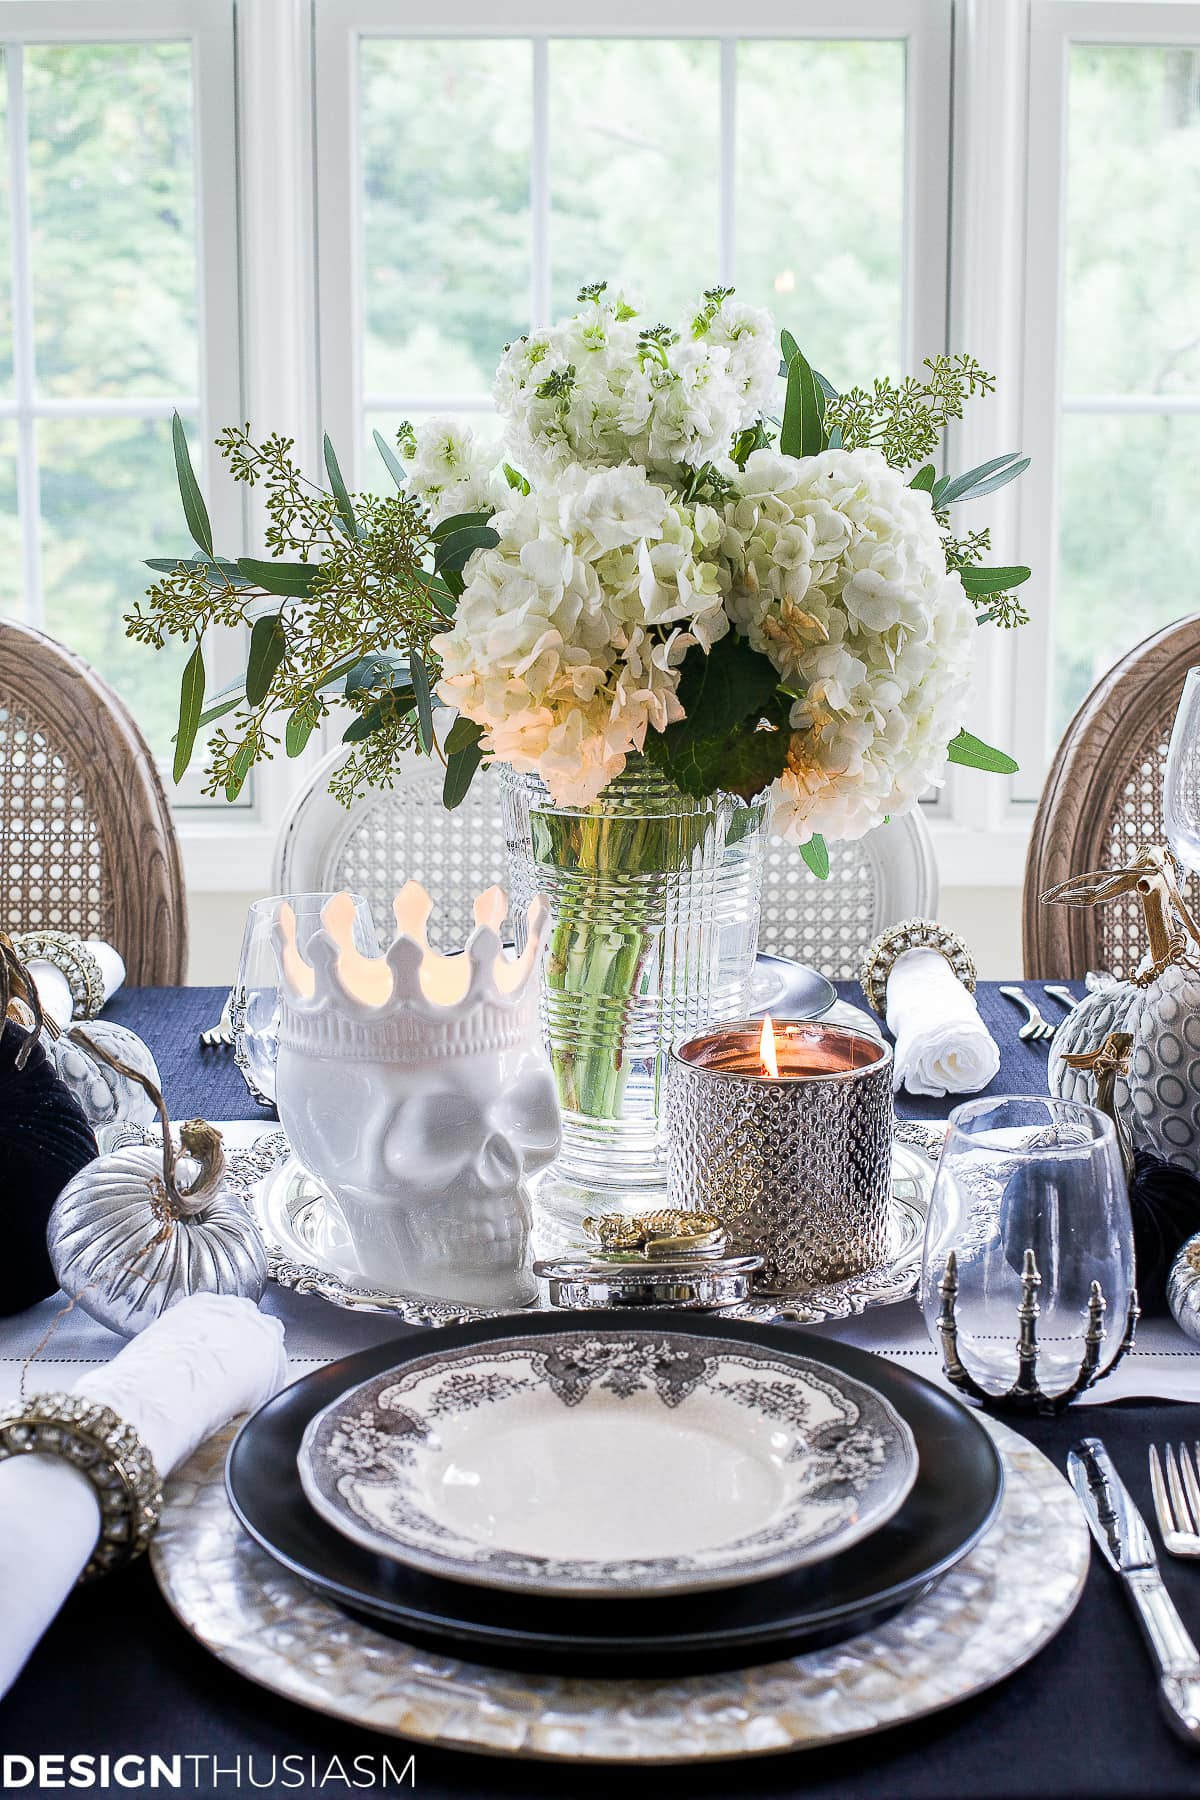 Halloween decoration ideas in an elegant tablescape